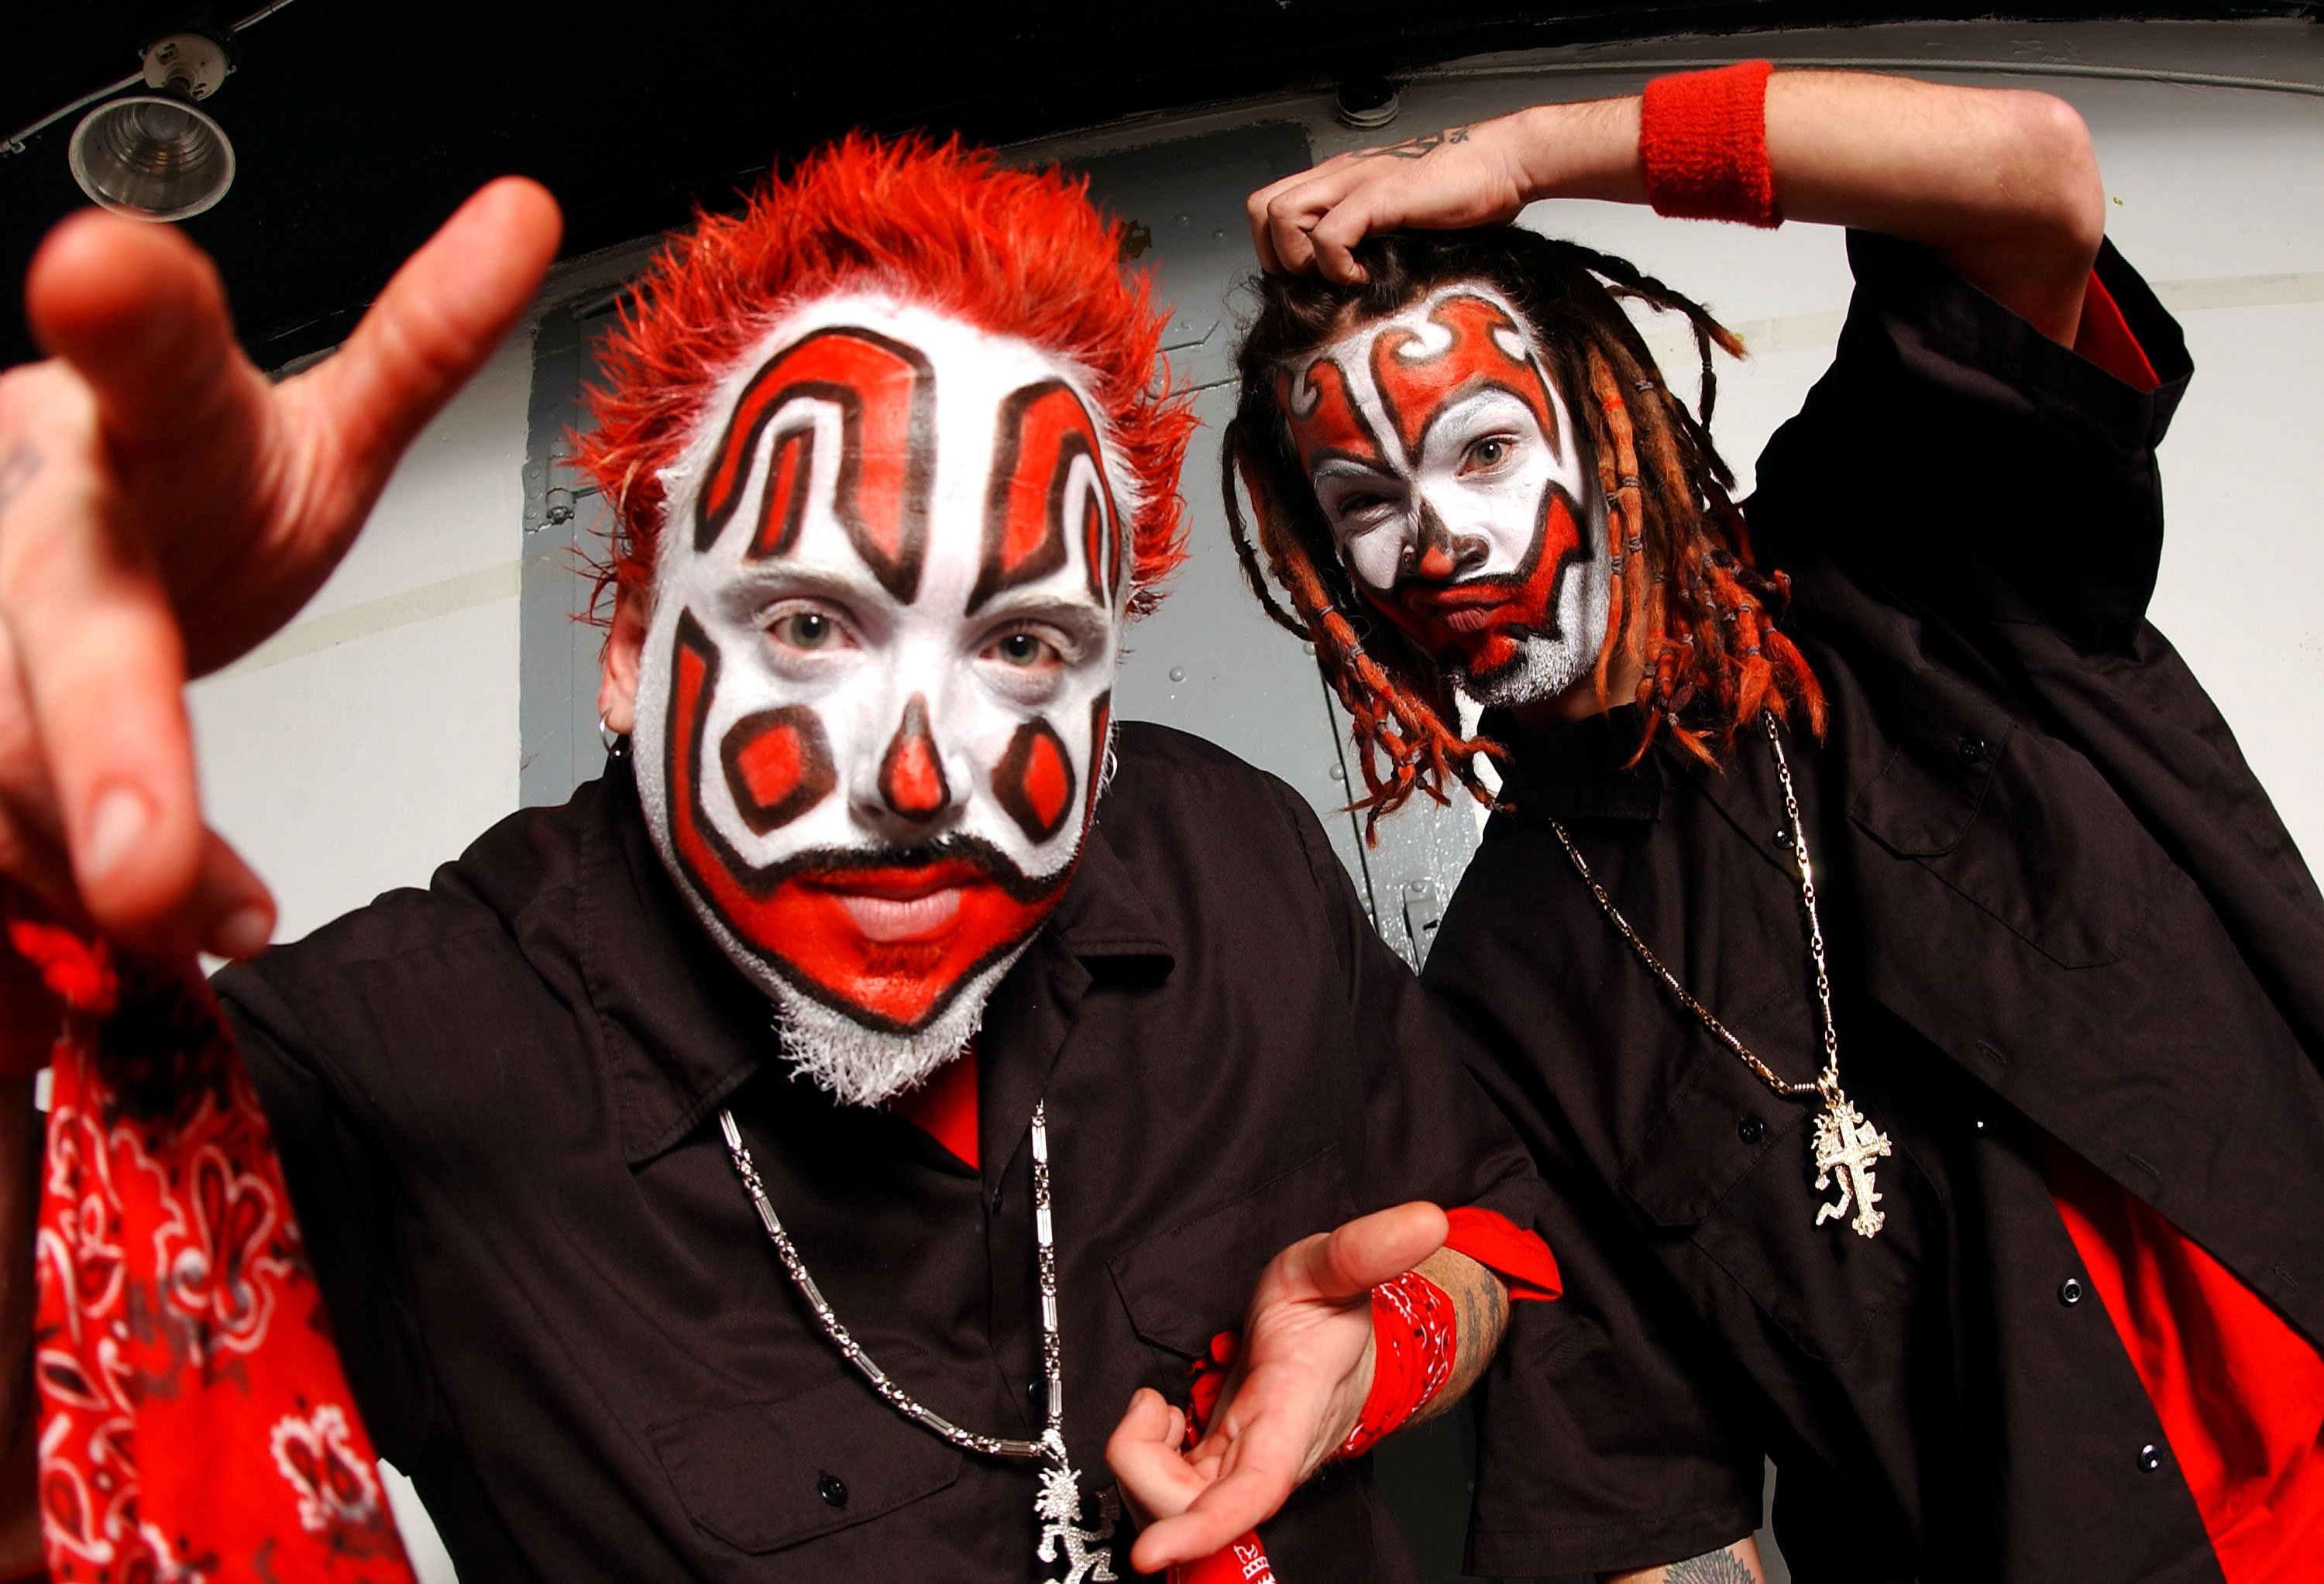 The dating game song by insane clown posse juggalo